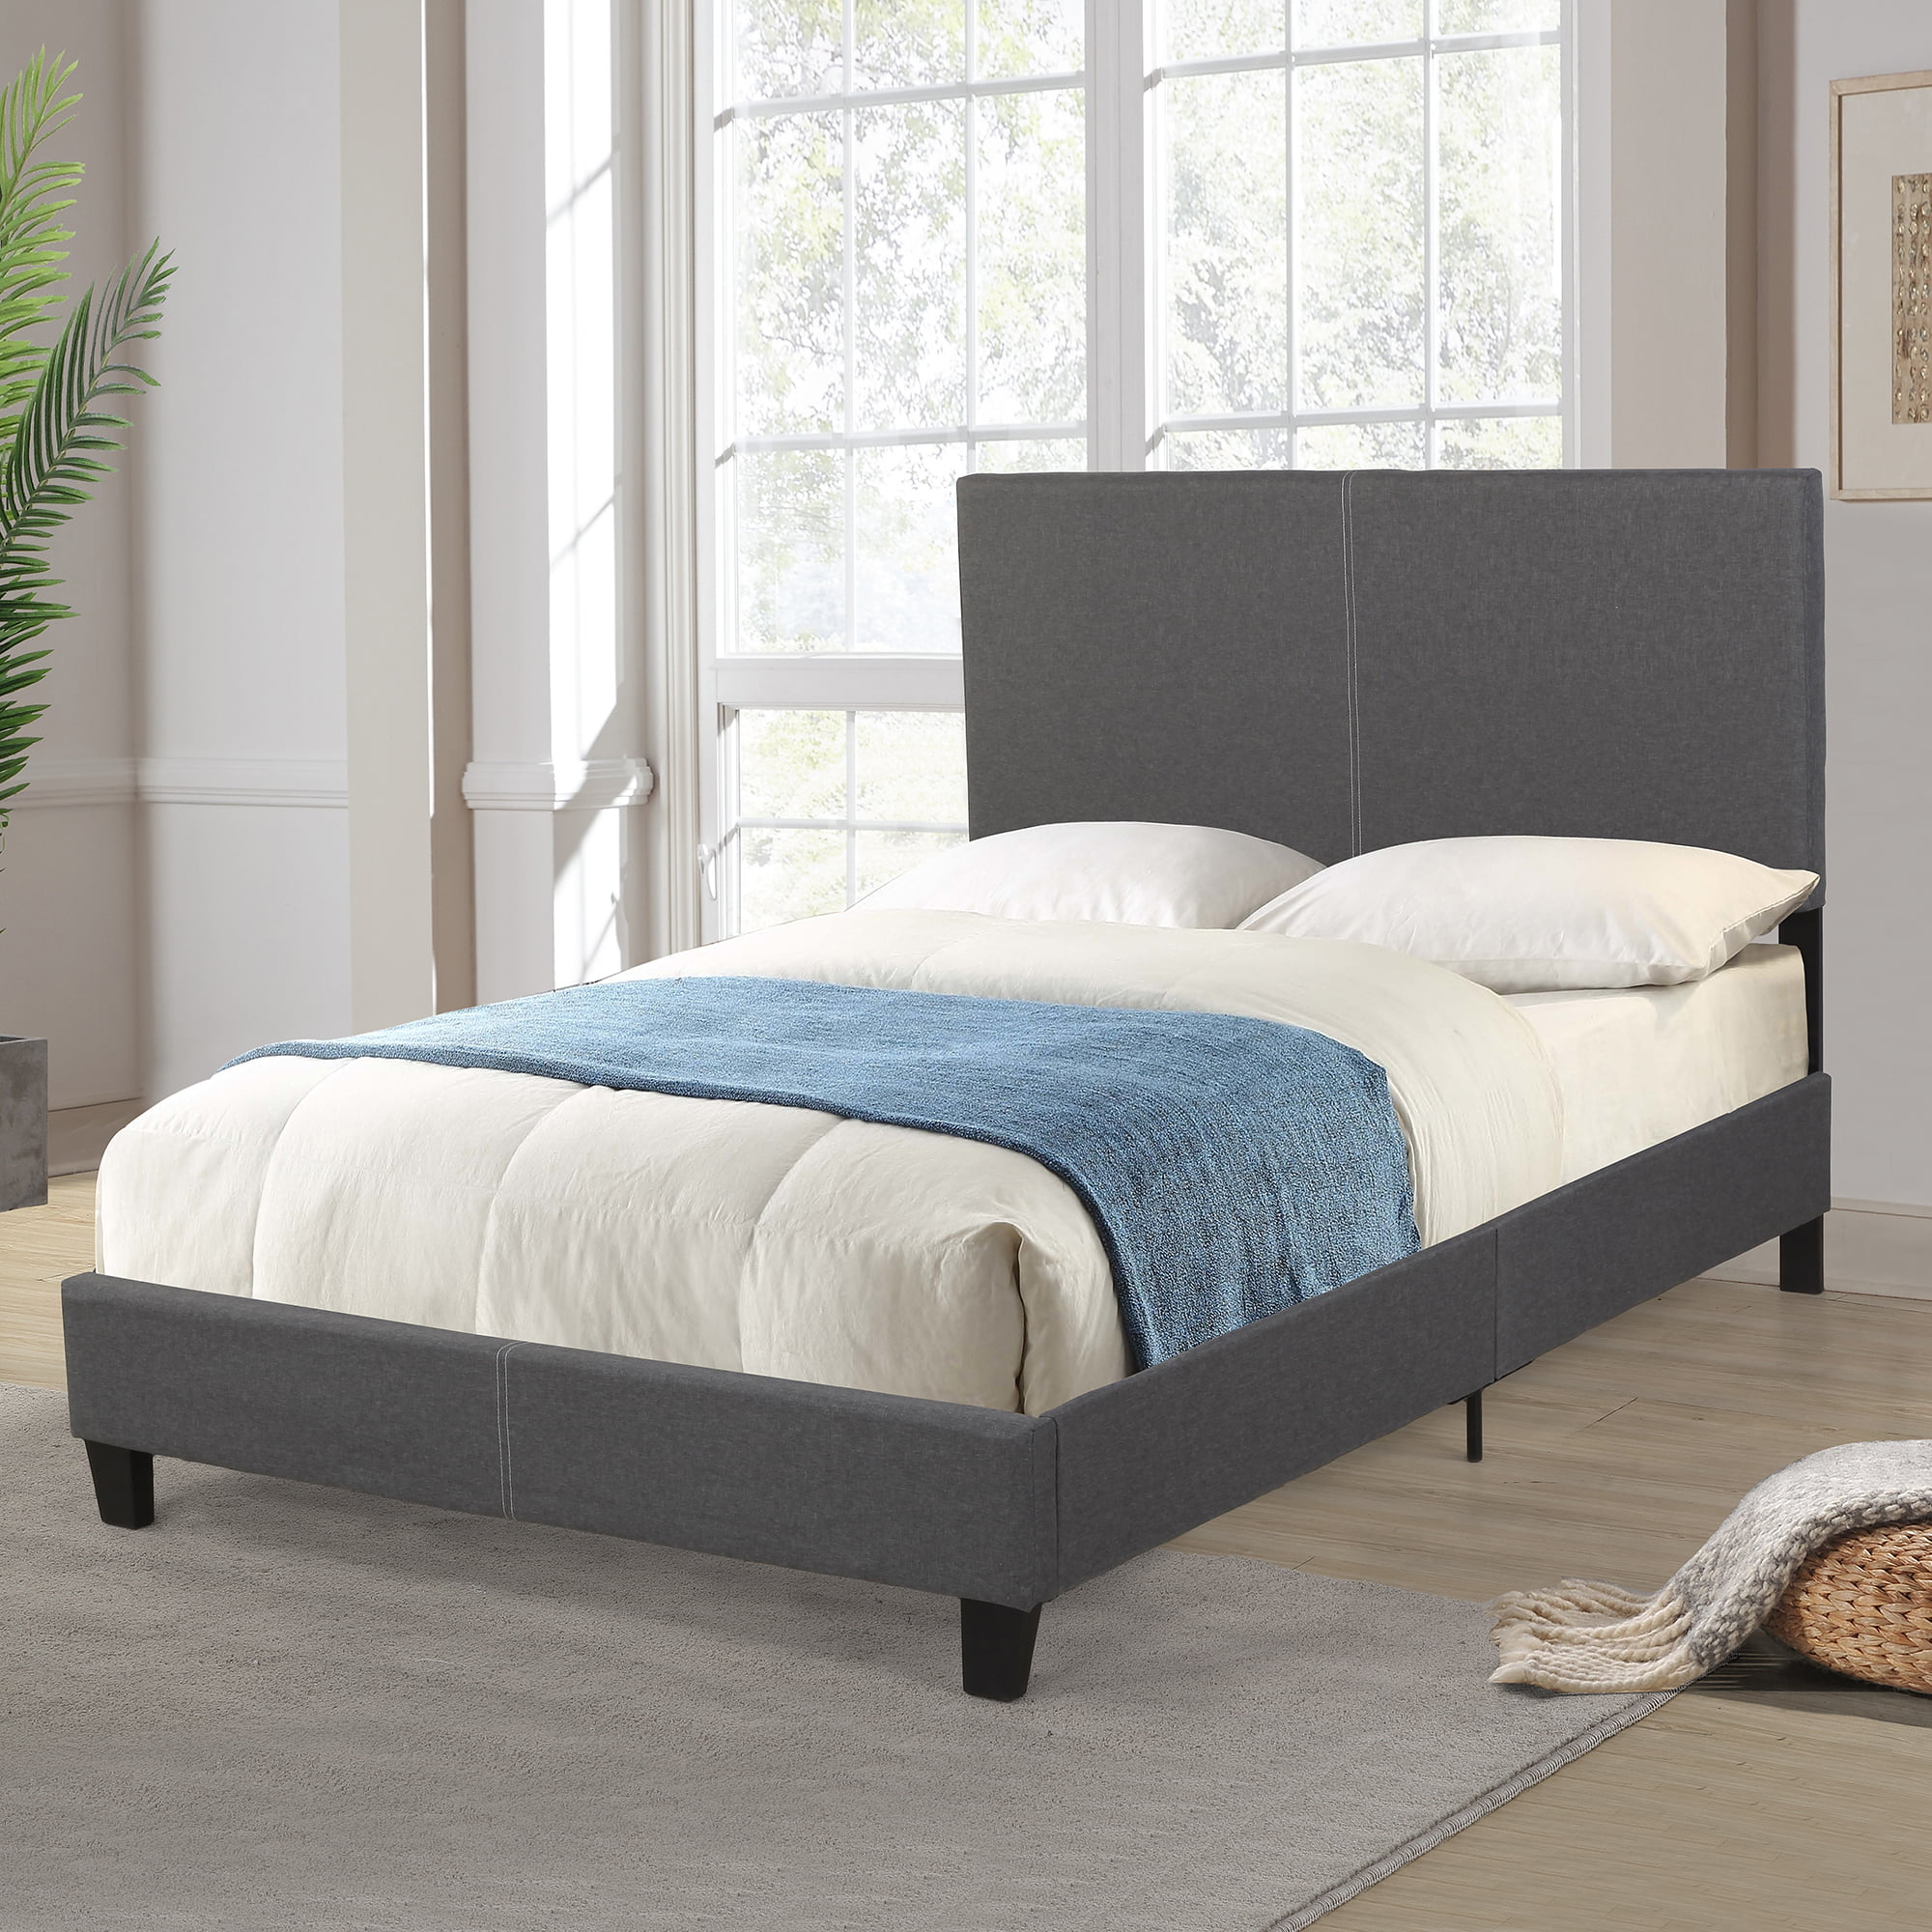 Full Size Bed Frame with Headboard, Faux Linen Upholstered Wood